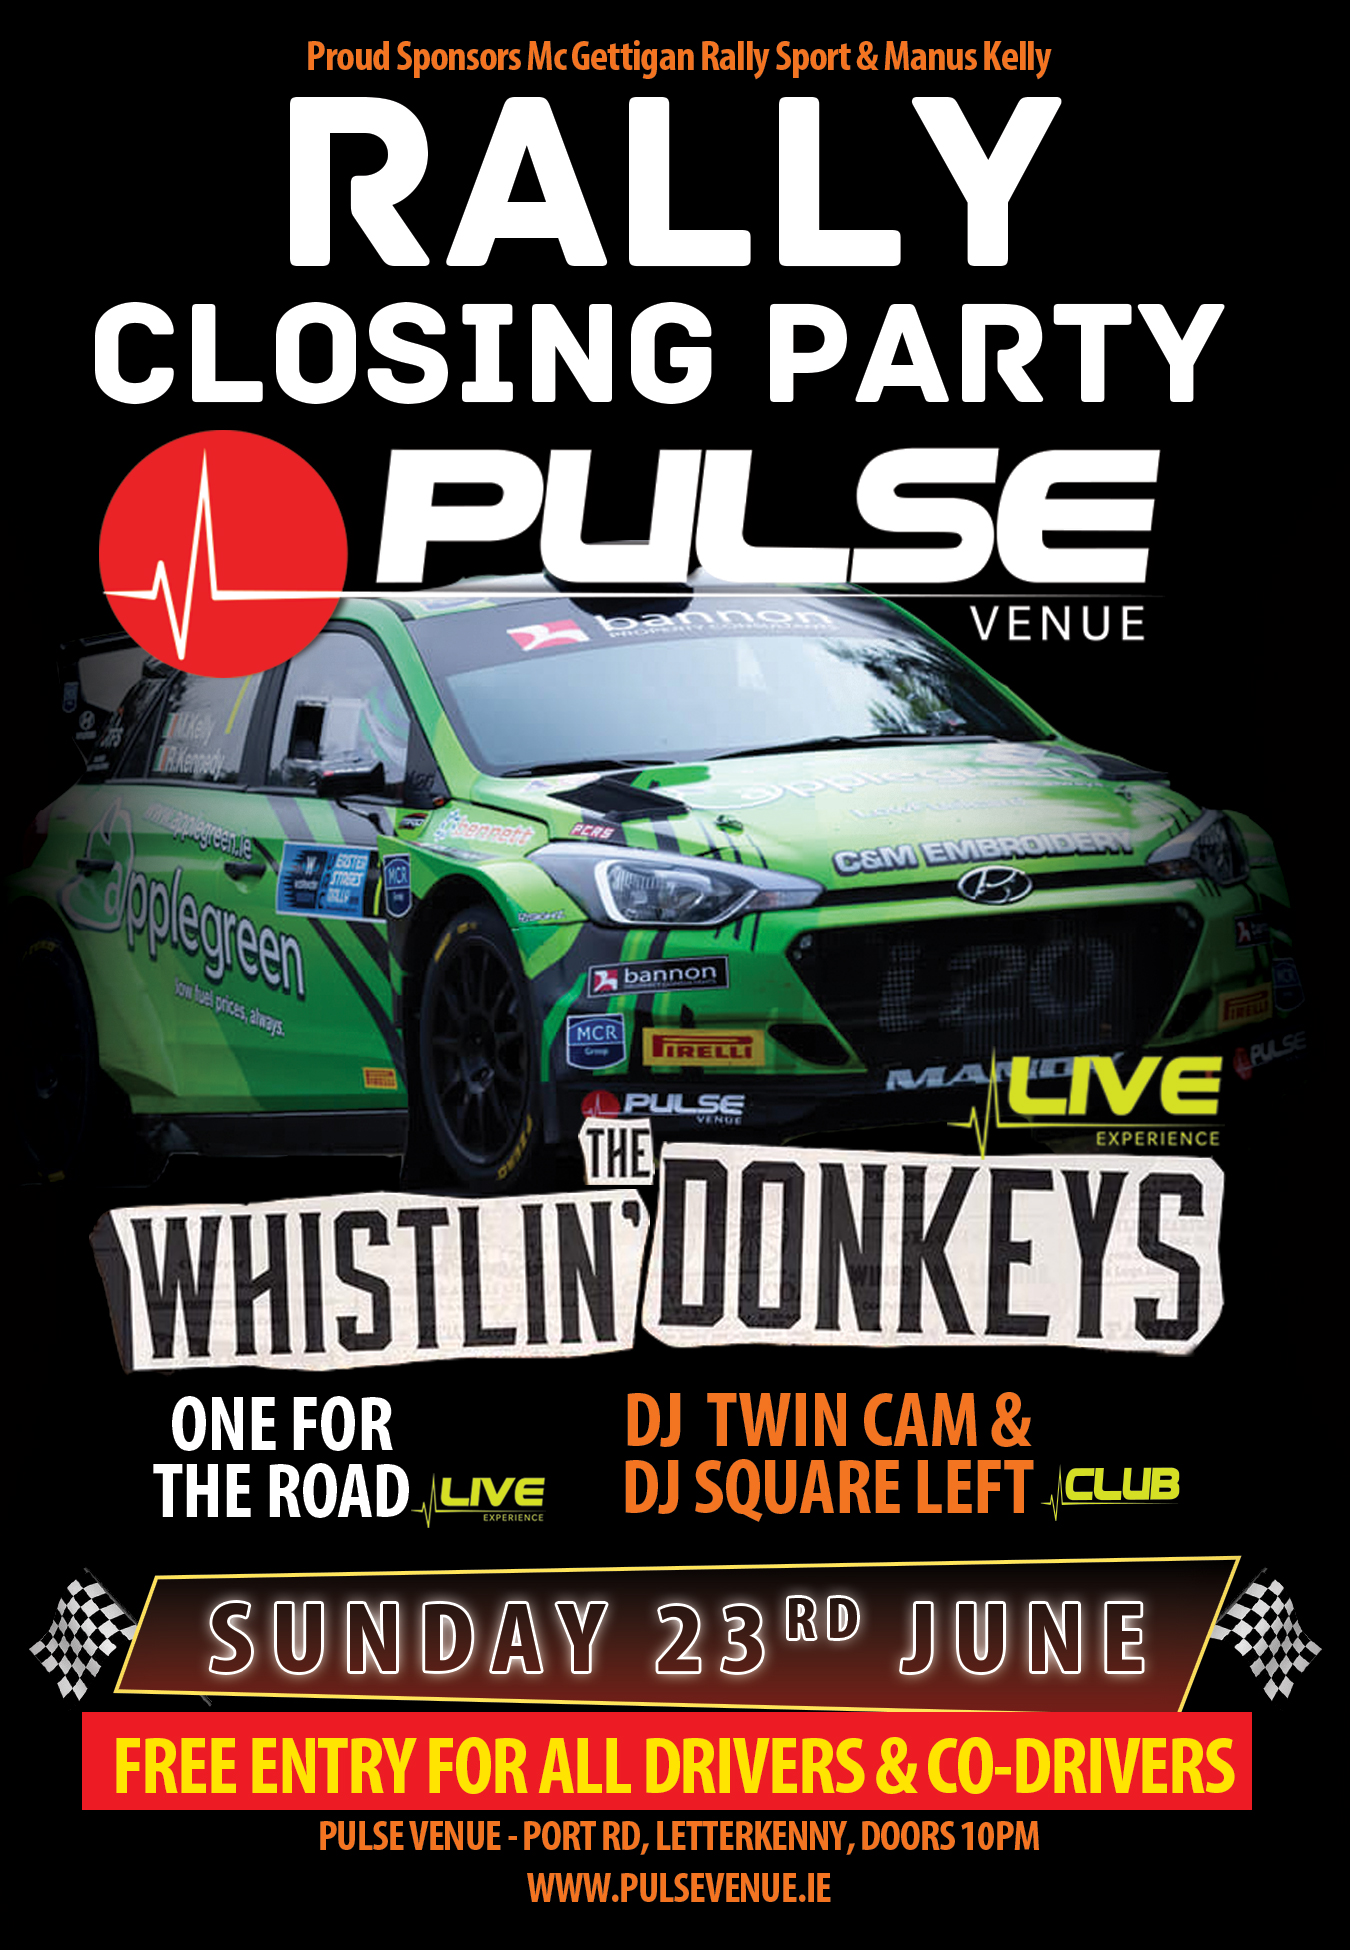 PULSE-VENUE----rally-closing-party-2019-june-22-2019.jpg